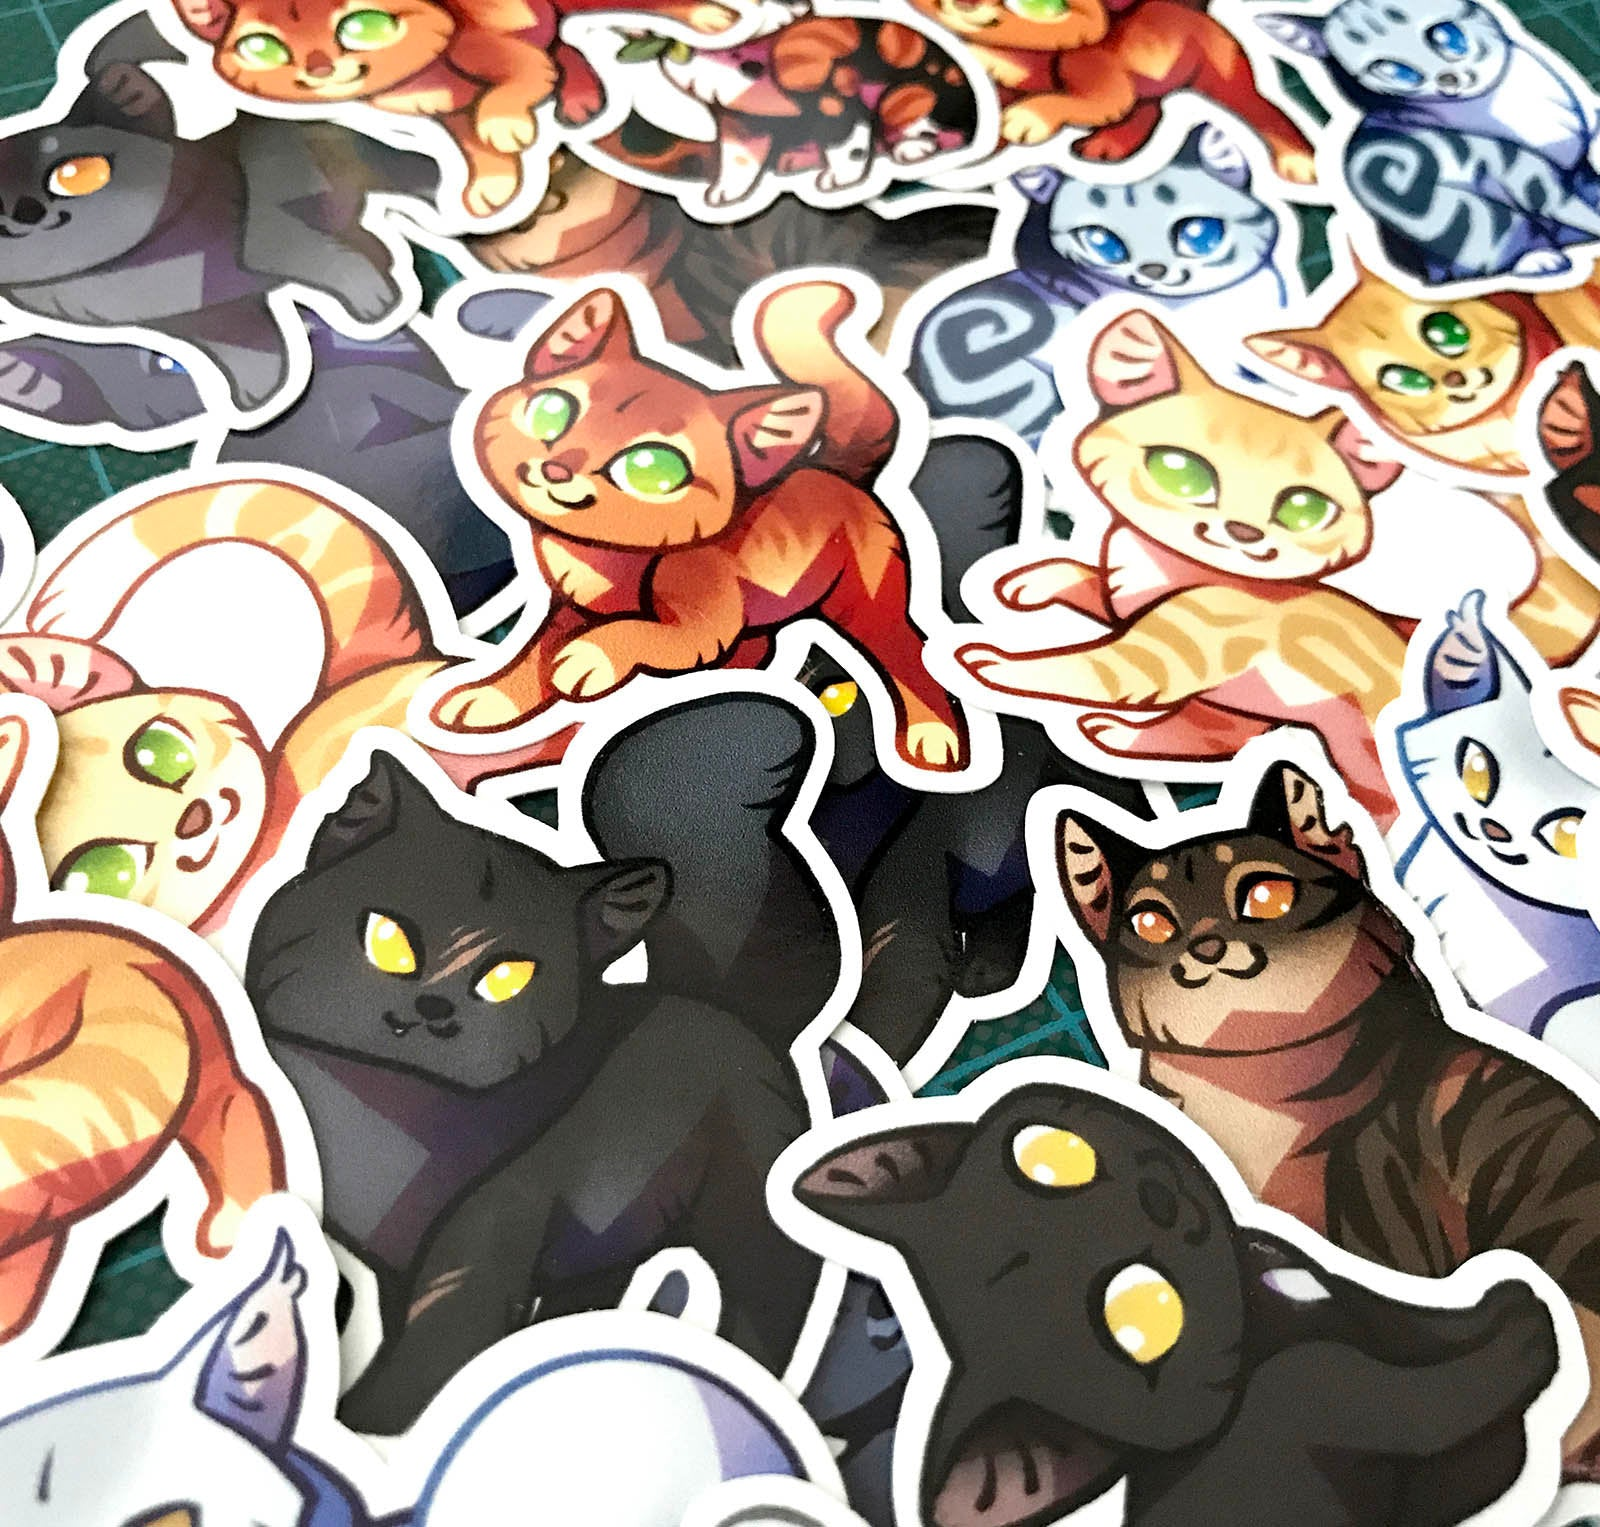 Cute Warrior Cats Sticker set